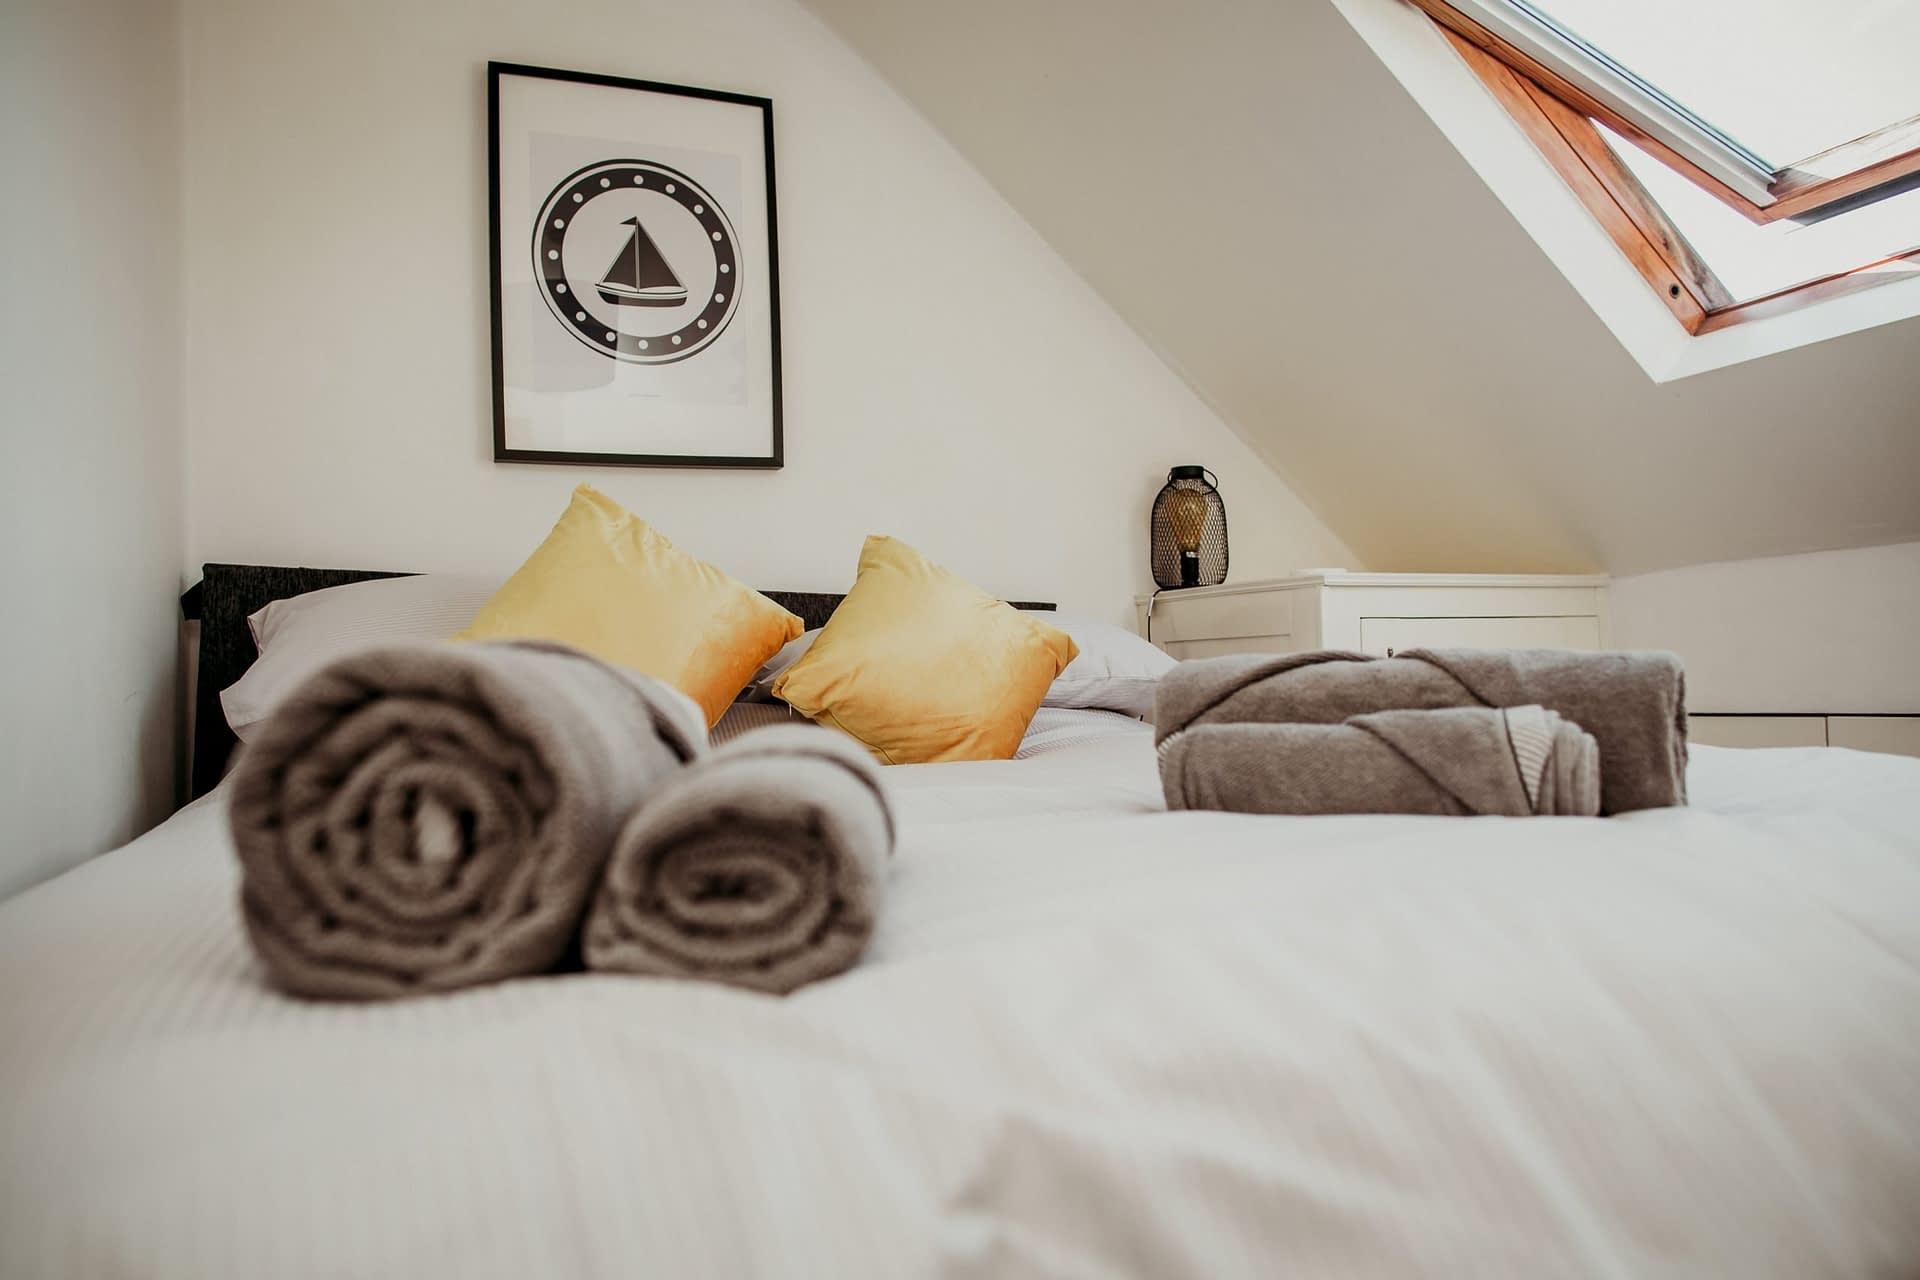 Bed linen and towels provided - The Lugger - Holiday Cottages Noss Mayo